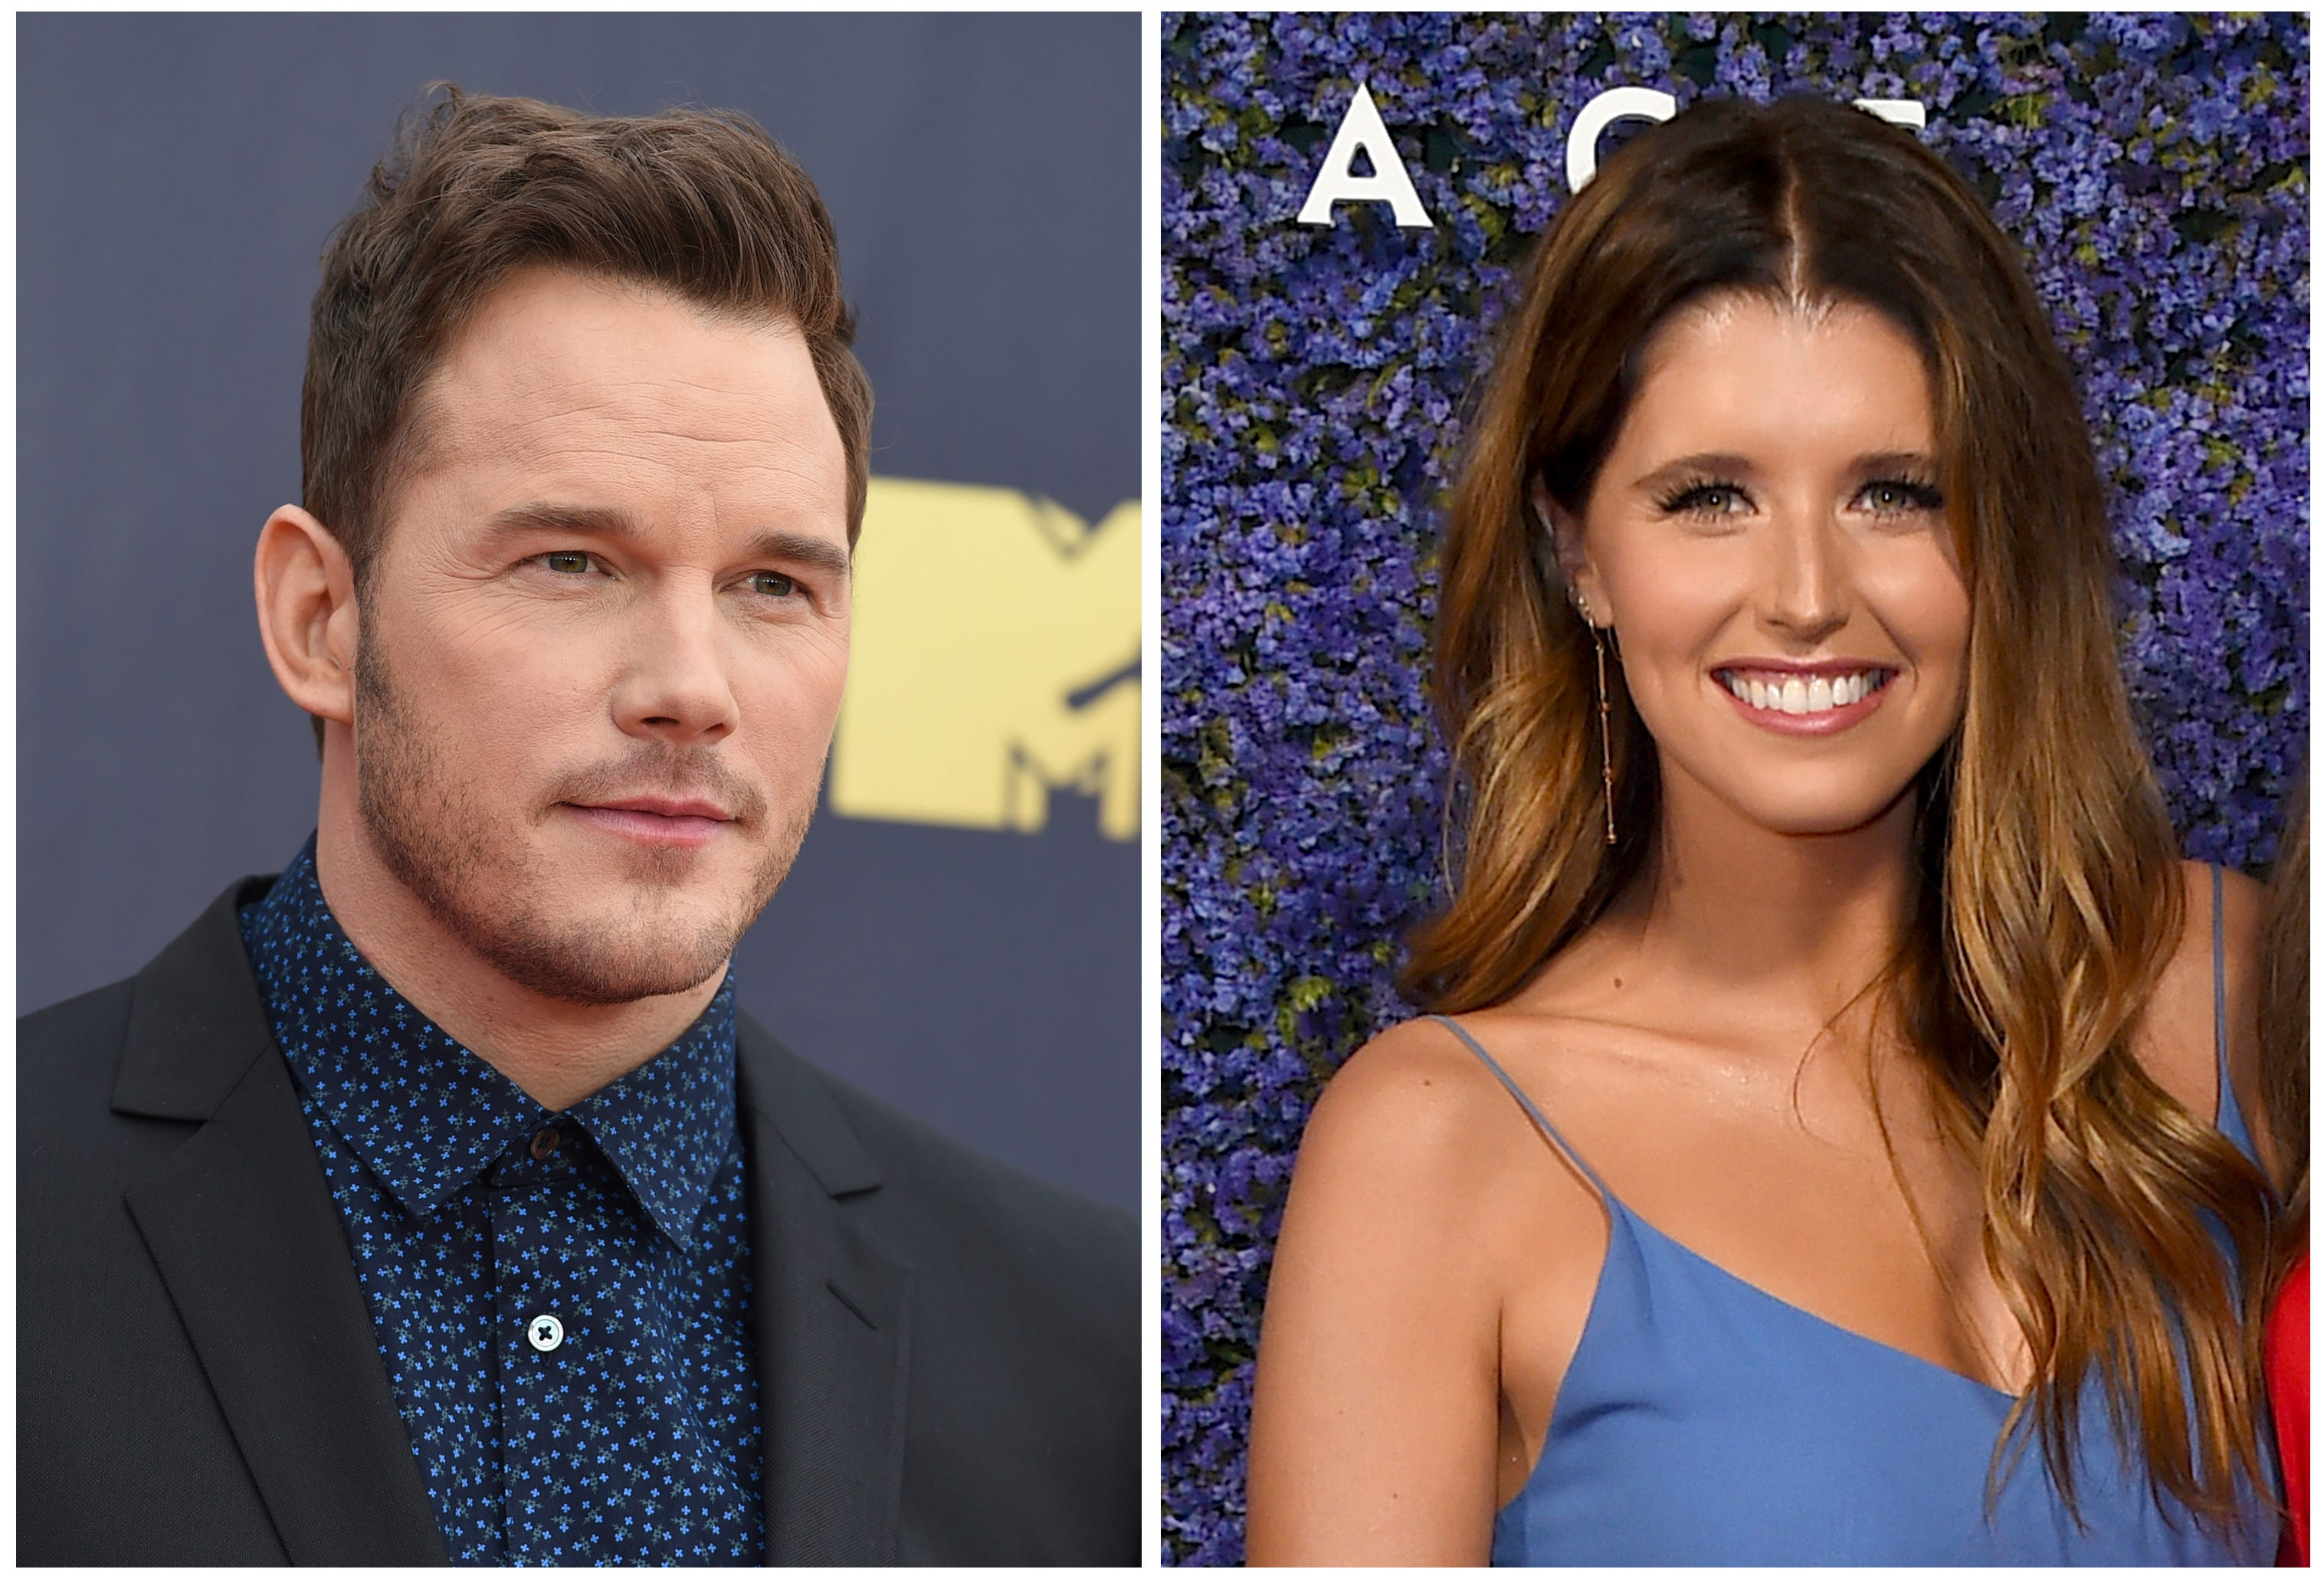 Everything we know about Chris Pratt's fiancee Katherine Schwarzenegger